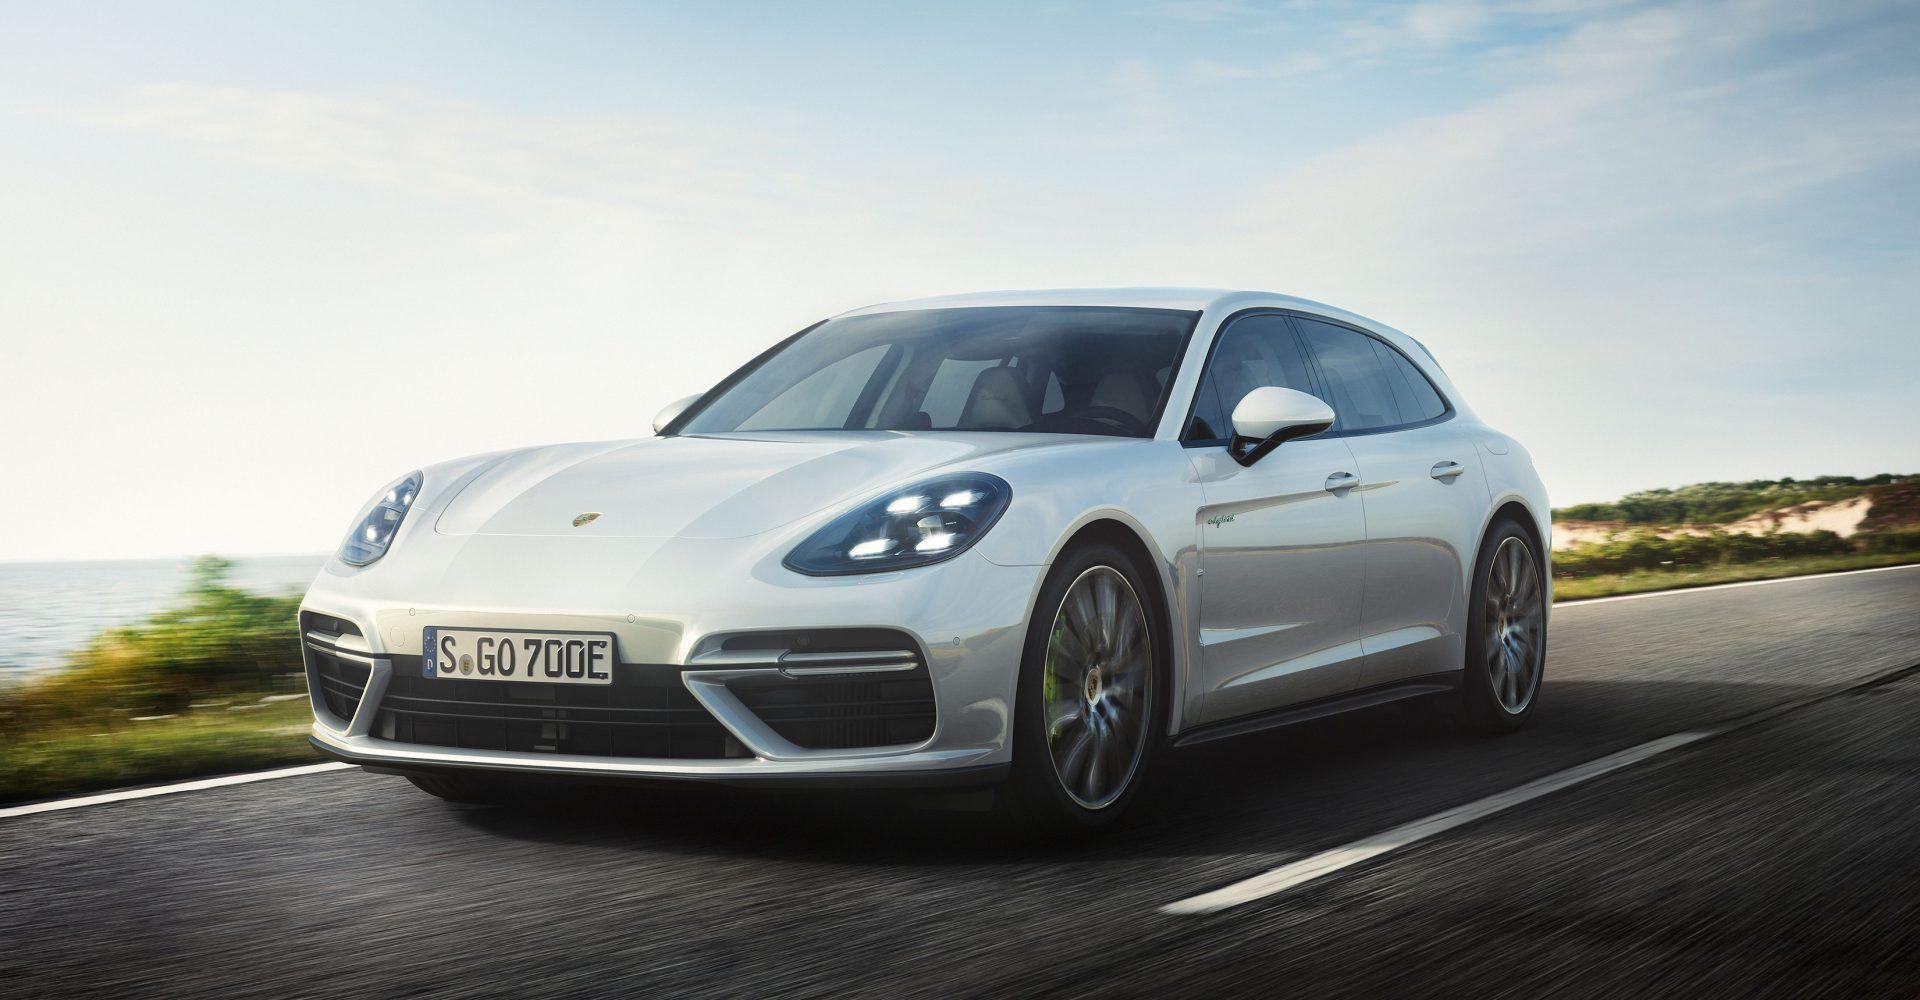 Here S What You Need To Know About The New Porsche Panamera Sport Turismo E